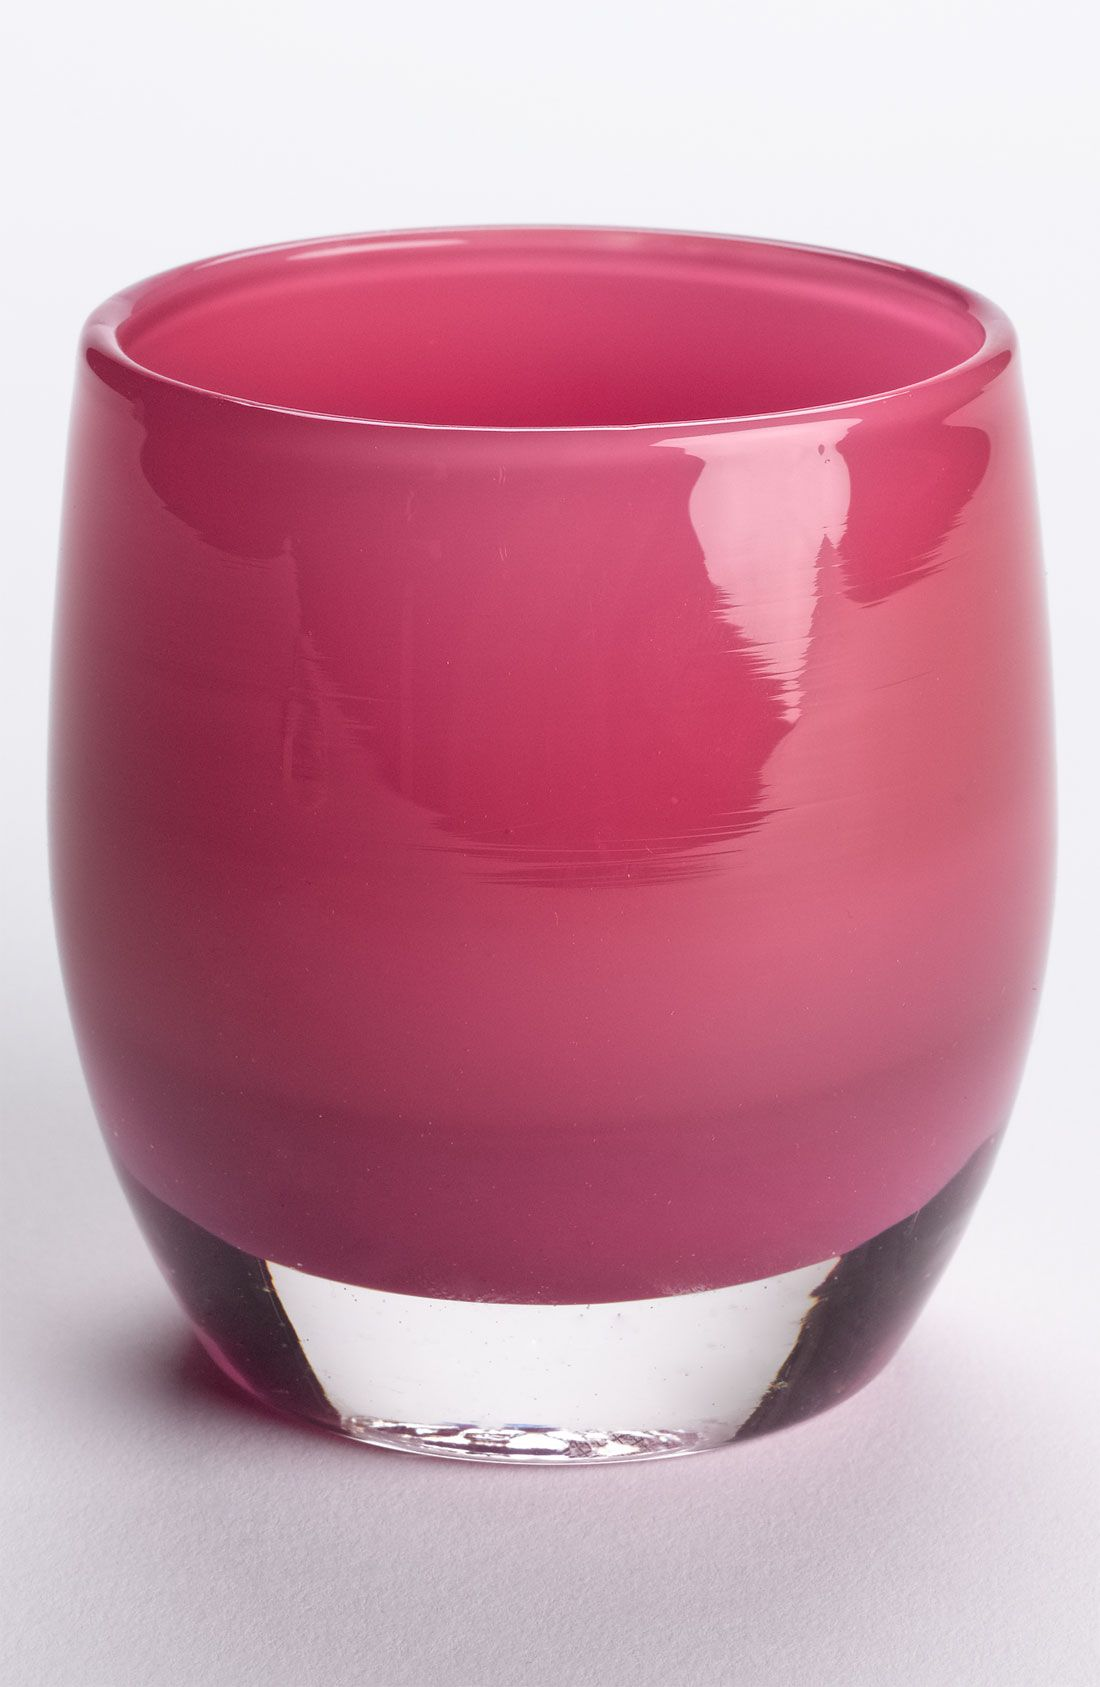 This Evelyn glassybaby created in honor of Evelyn Lauder is a vivid pink in color, but shines with its own lively, signature glow when lit.